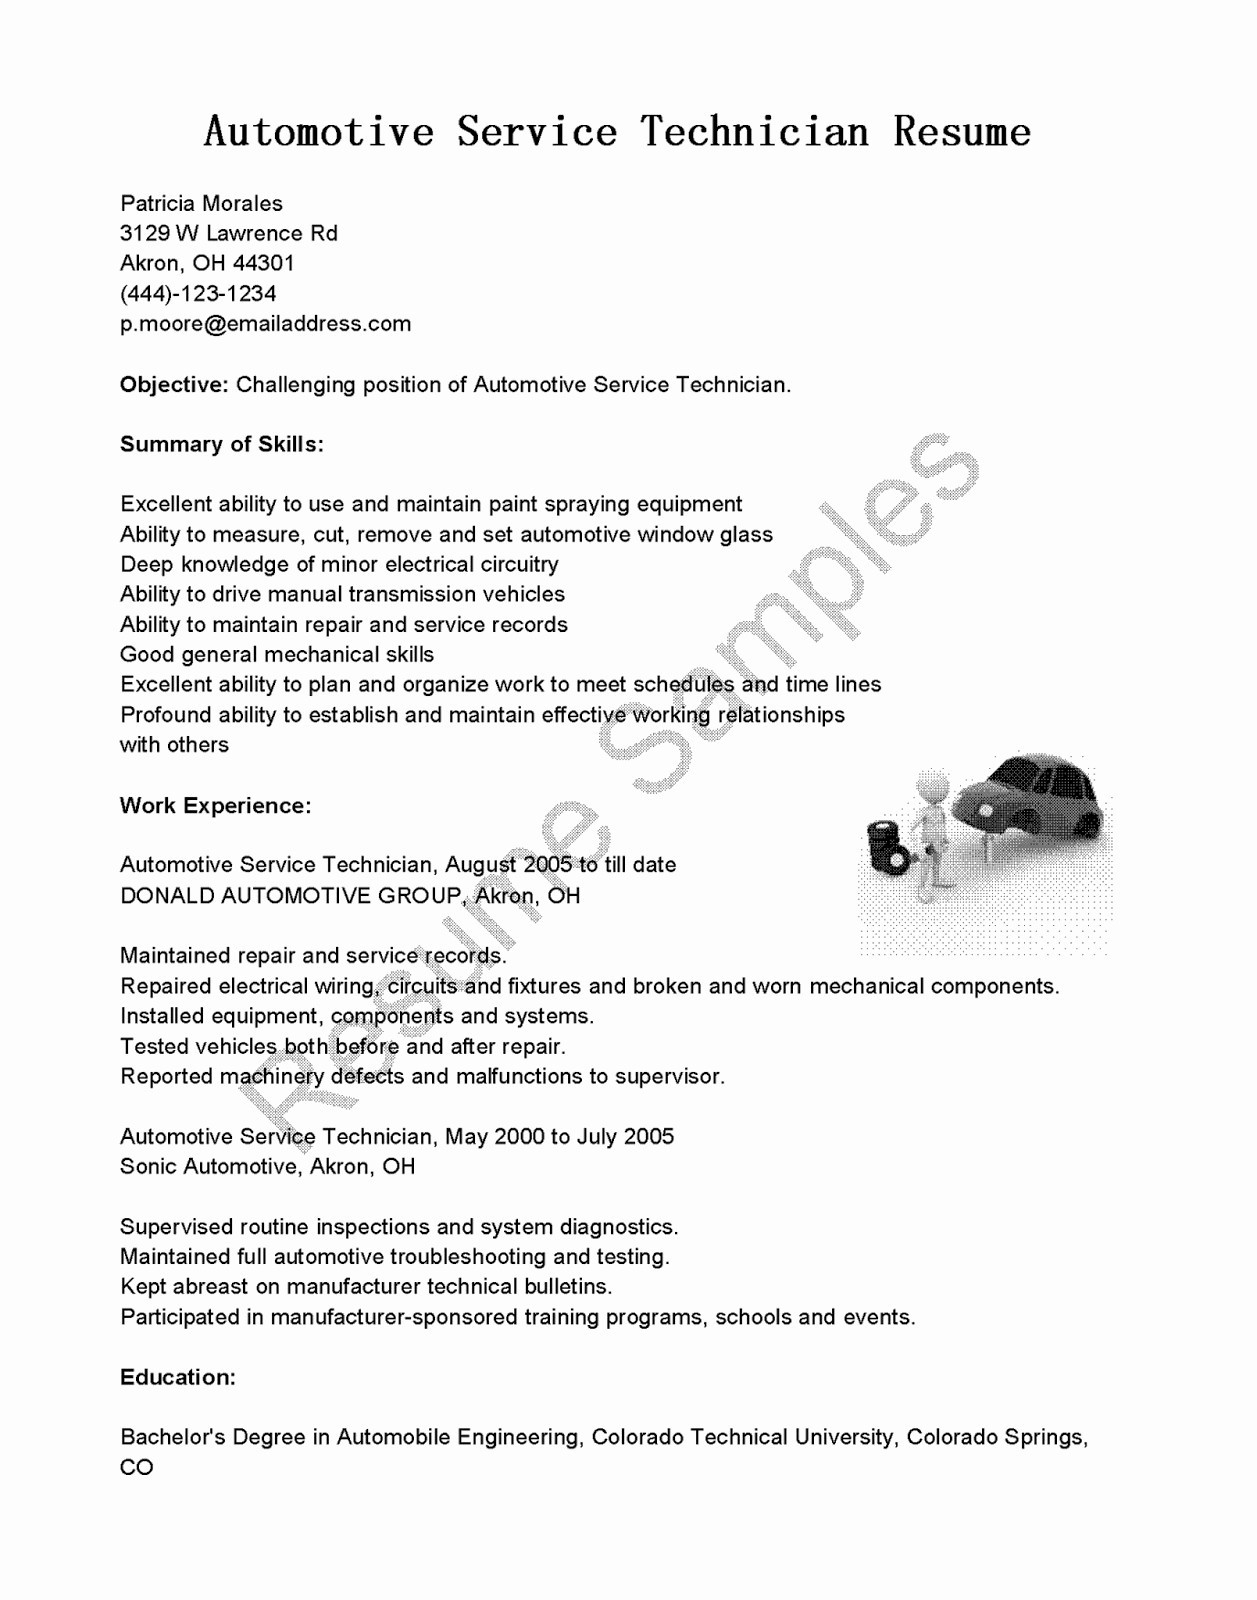 car technician resume Collection-Master Technician Resume Lovely Surgical Tech Resume Best Technicians Resume New Obama Resume 0d 14-c